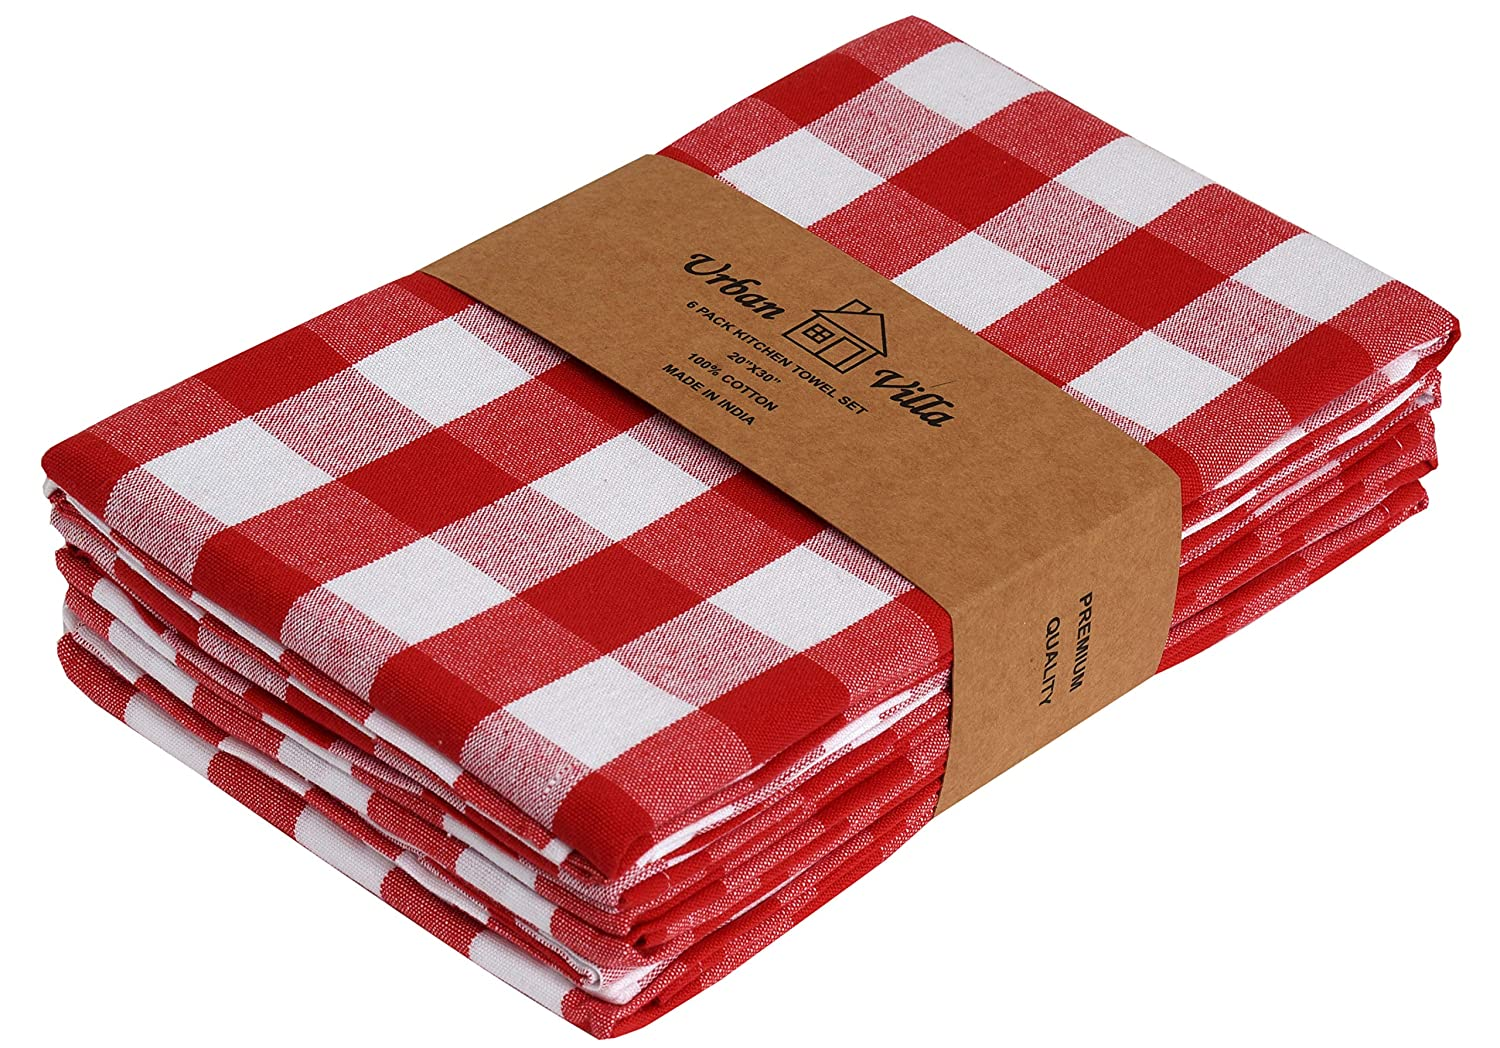 Urban Villa Kitchen Towels, Premium Quality,100% Cotton Dish Towels,Mitered Corners,Ultra Soft (Size: 20X30 Inch), Red/White Highly Absorbent Bar Towels & Tea Towels - (Set of 6)